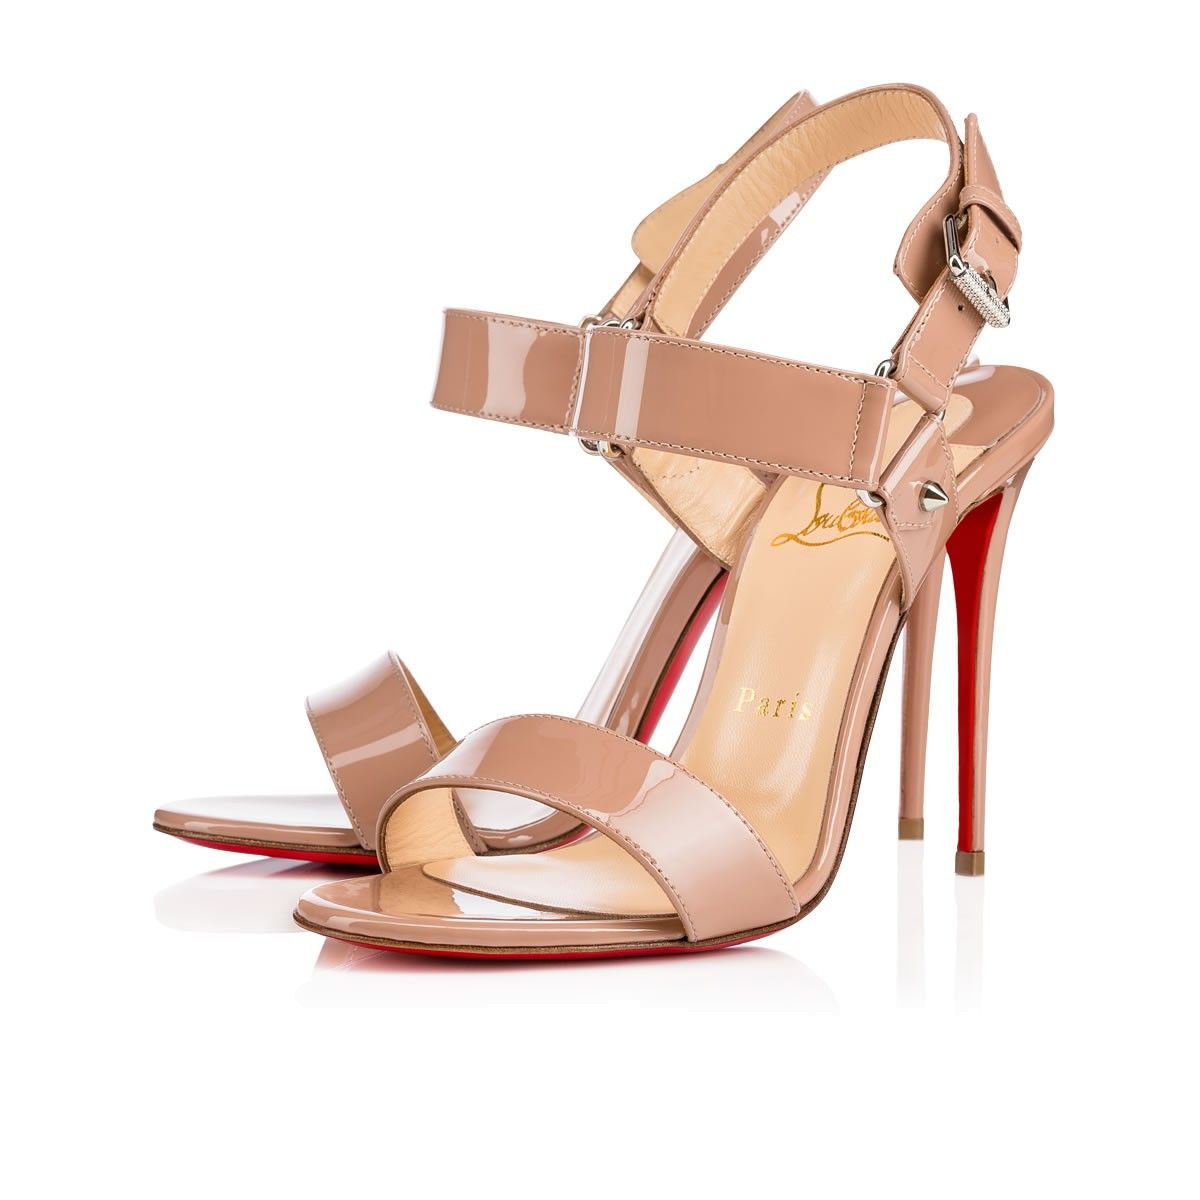 2abb7efa0dd CHRISTIAN LOUBOUTIN Sova Heel 100Mm Nude Patent Leather.  christianlouboutin   shoes